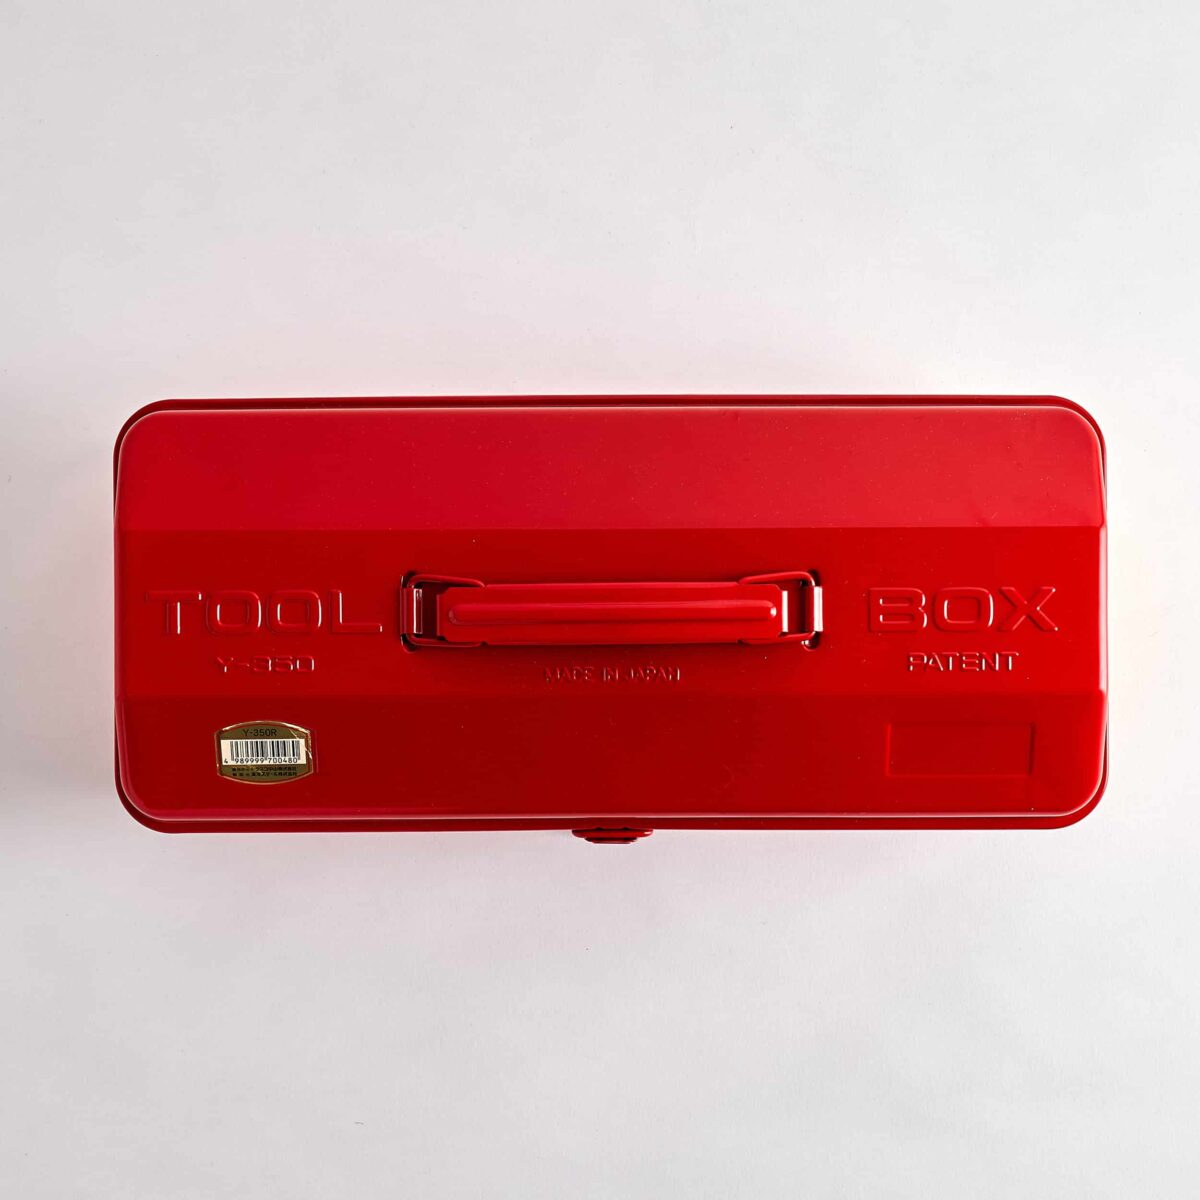 Trusco Toolbox Red-Another-Country-Photo Credit Yeshen Venema -web ready-21.11.185369